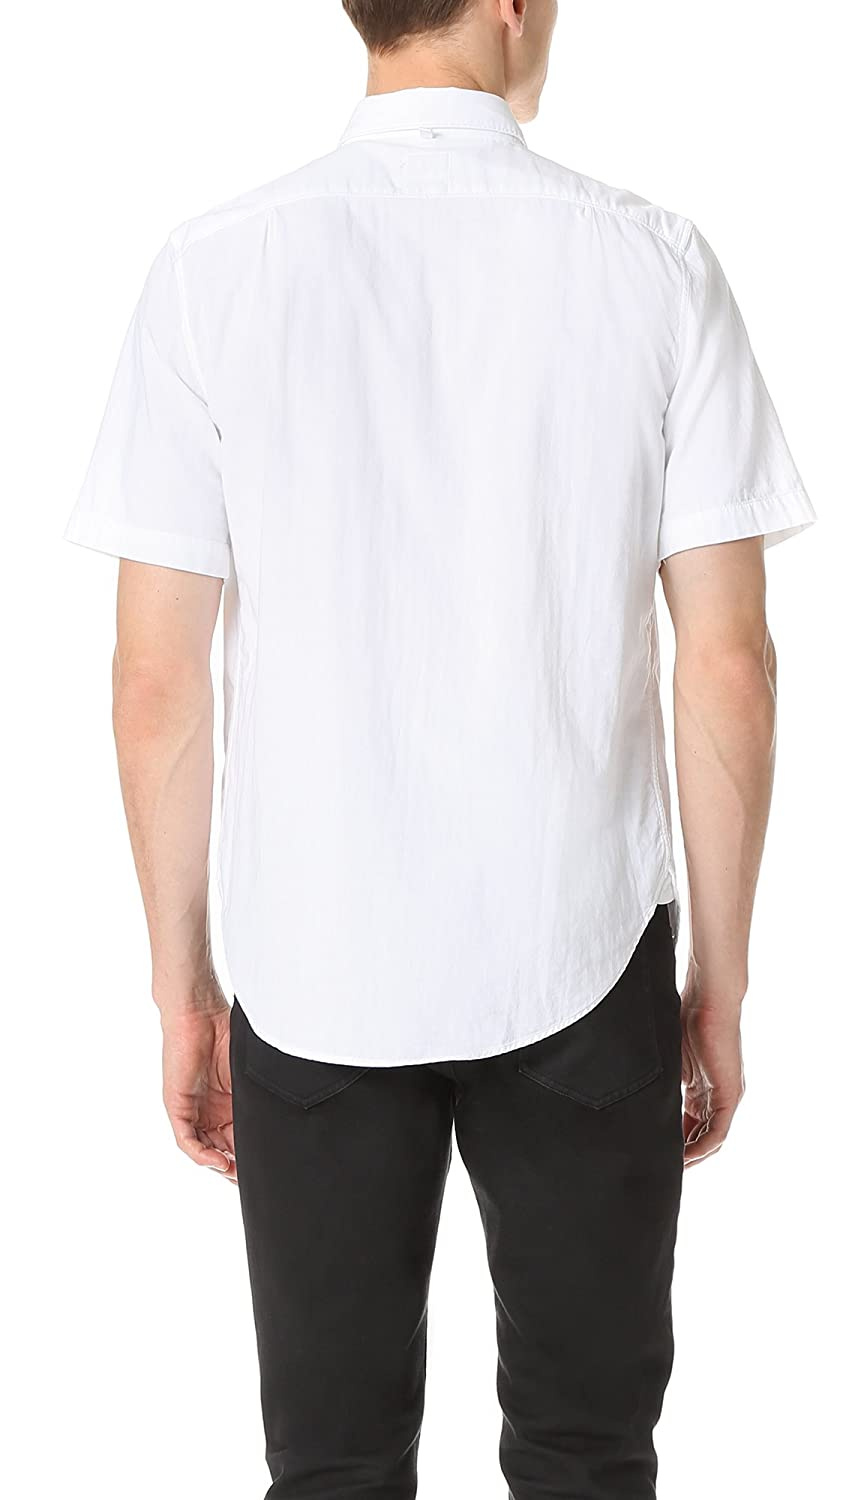 454eb048000 Rag & Bone Standard Issue Men's Standard Issue Short Sleeve Beach ...